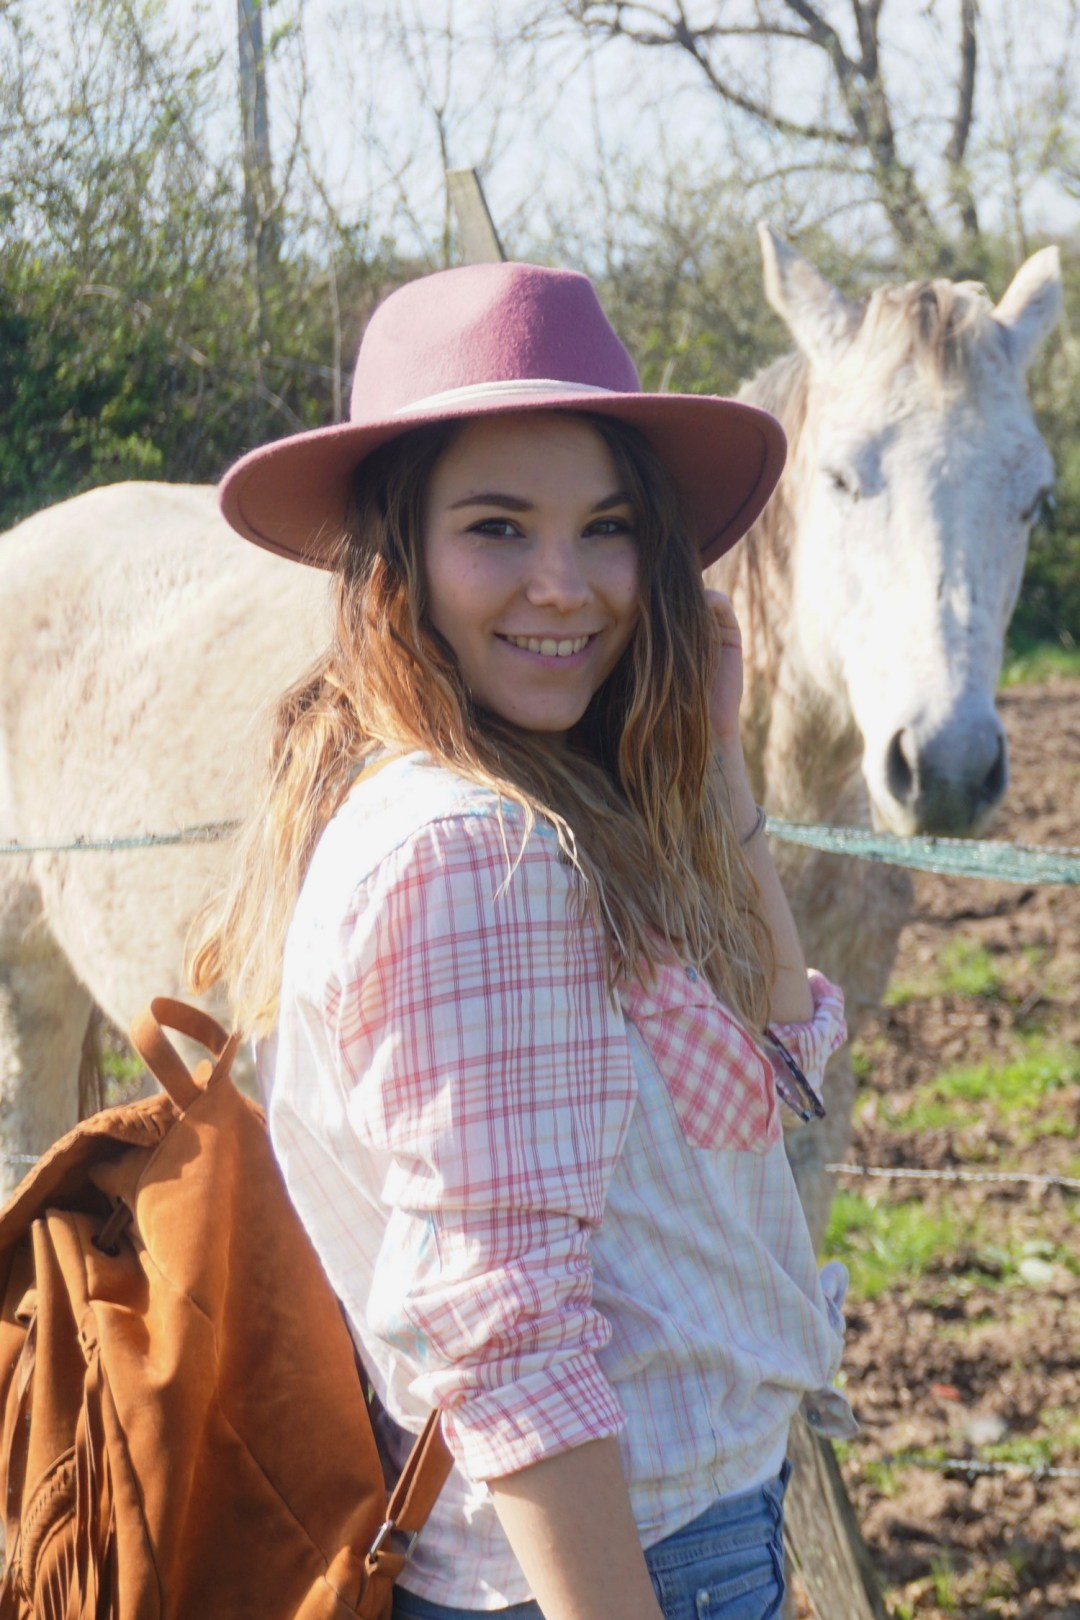 LOOK WESTERN GIRLY COW GIRL CHAPEAU ROSE BLOG MODE BORDEAUX FRANCE CORSE FASHION CENTRE EQUESTRE 18